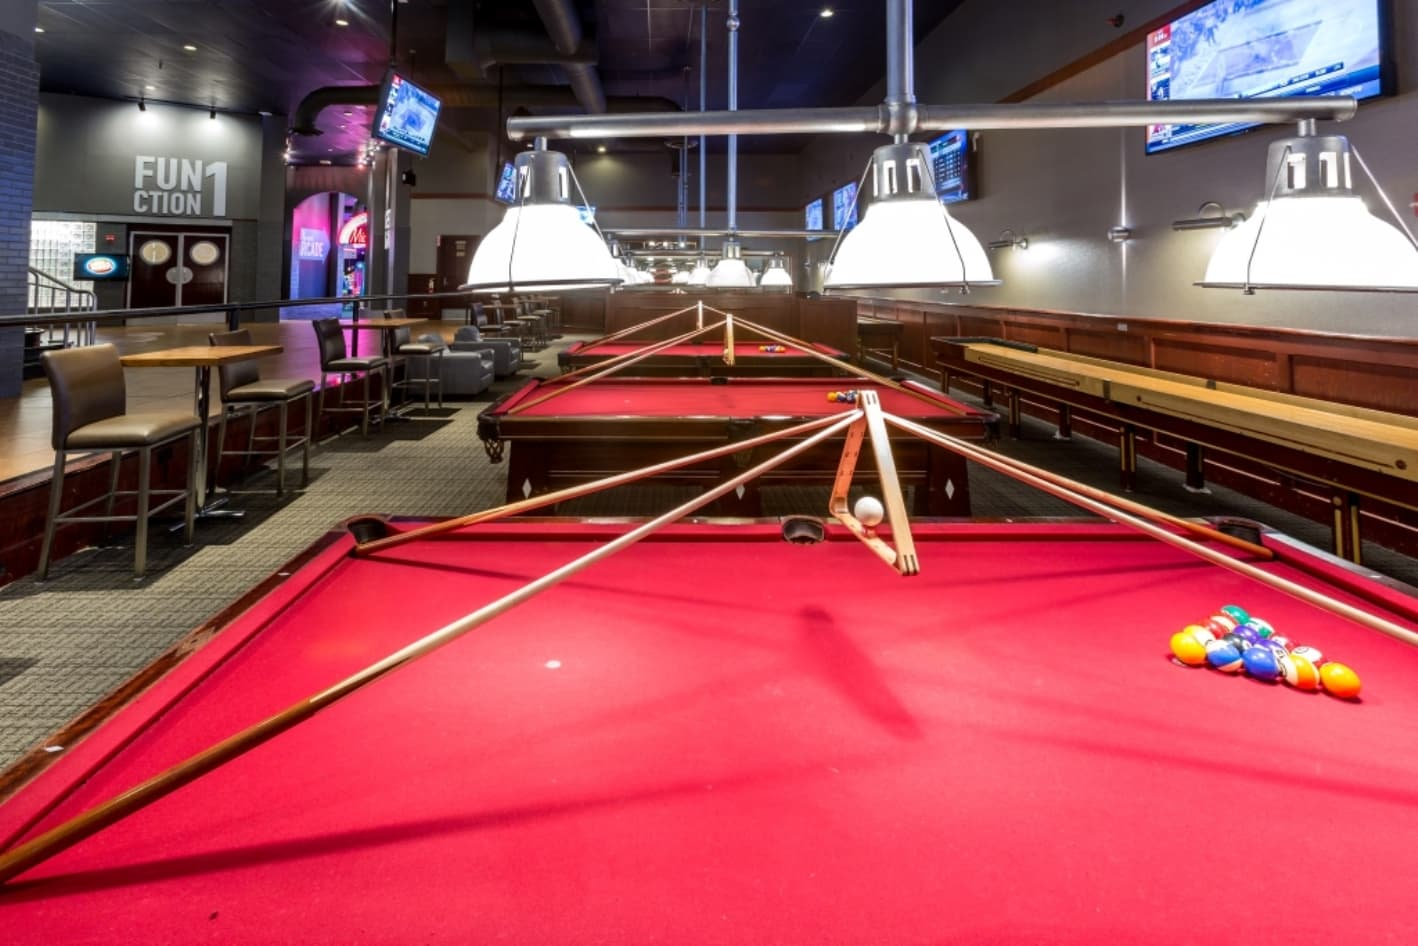 Billiards at the Palisades location